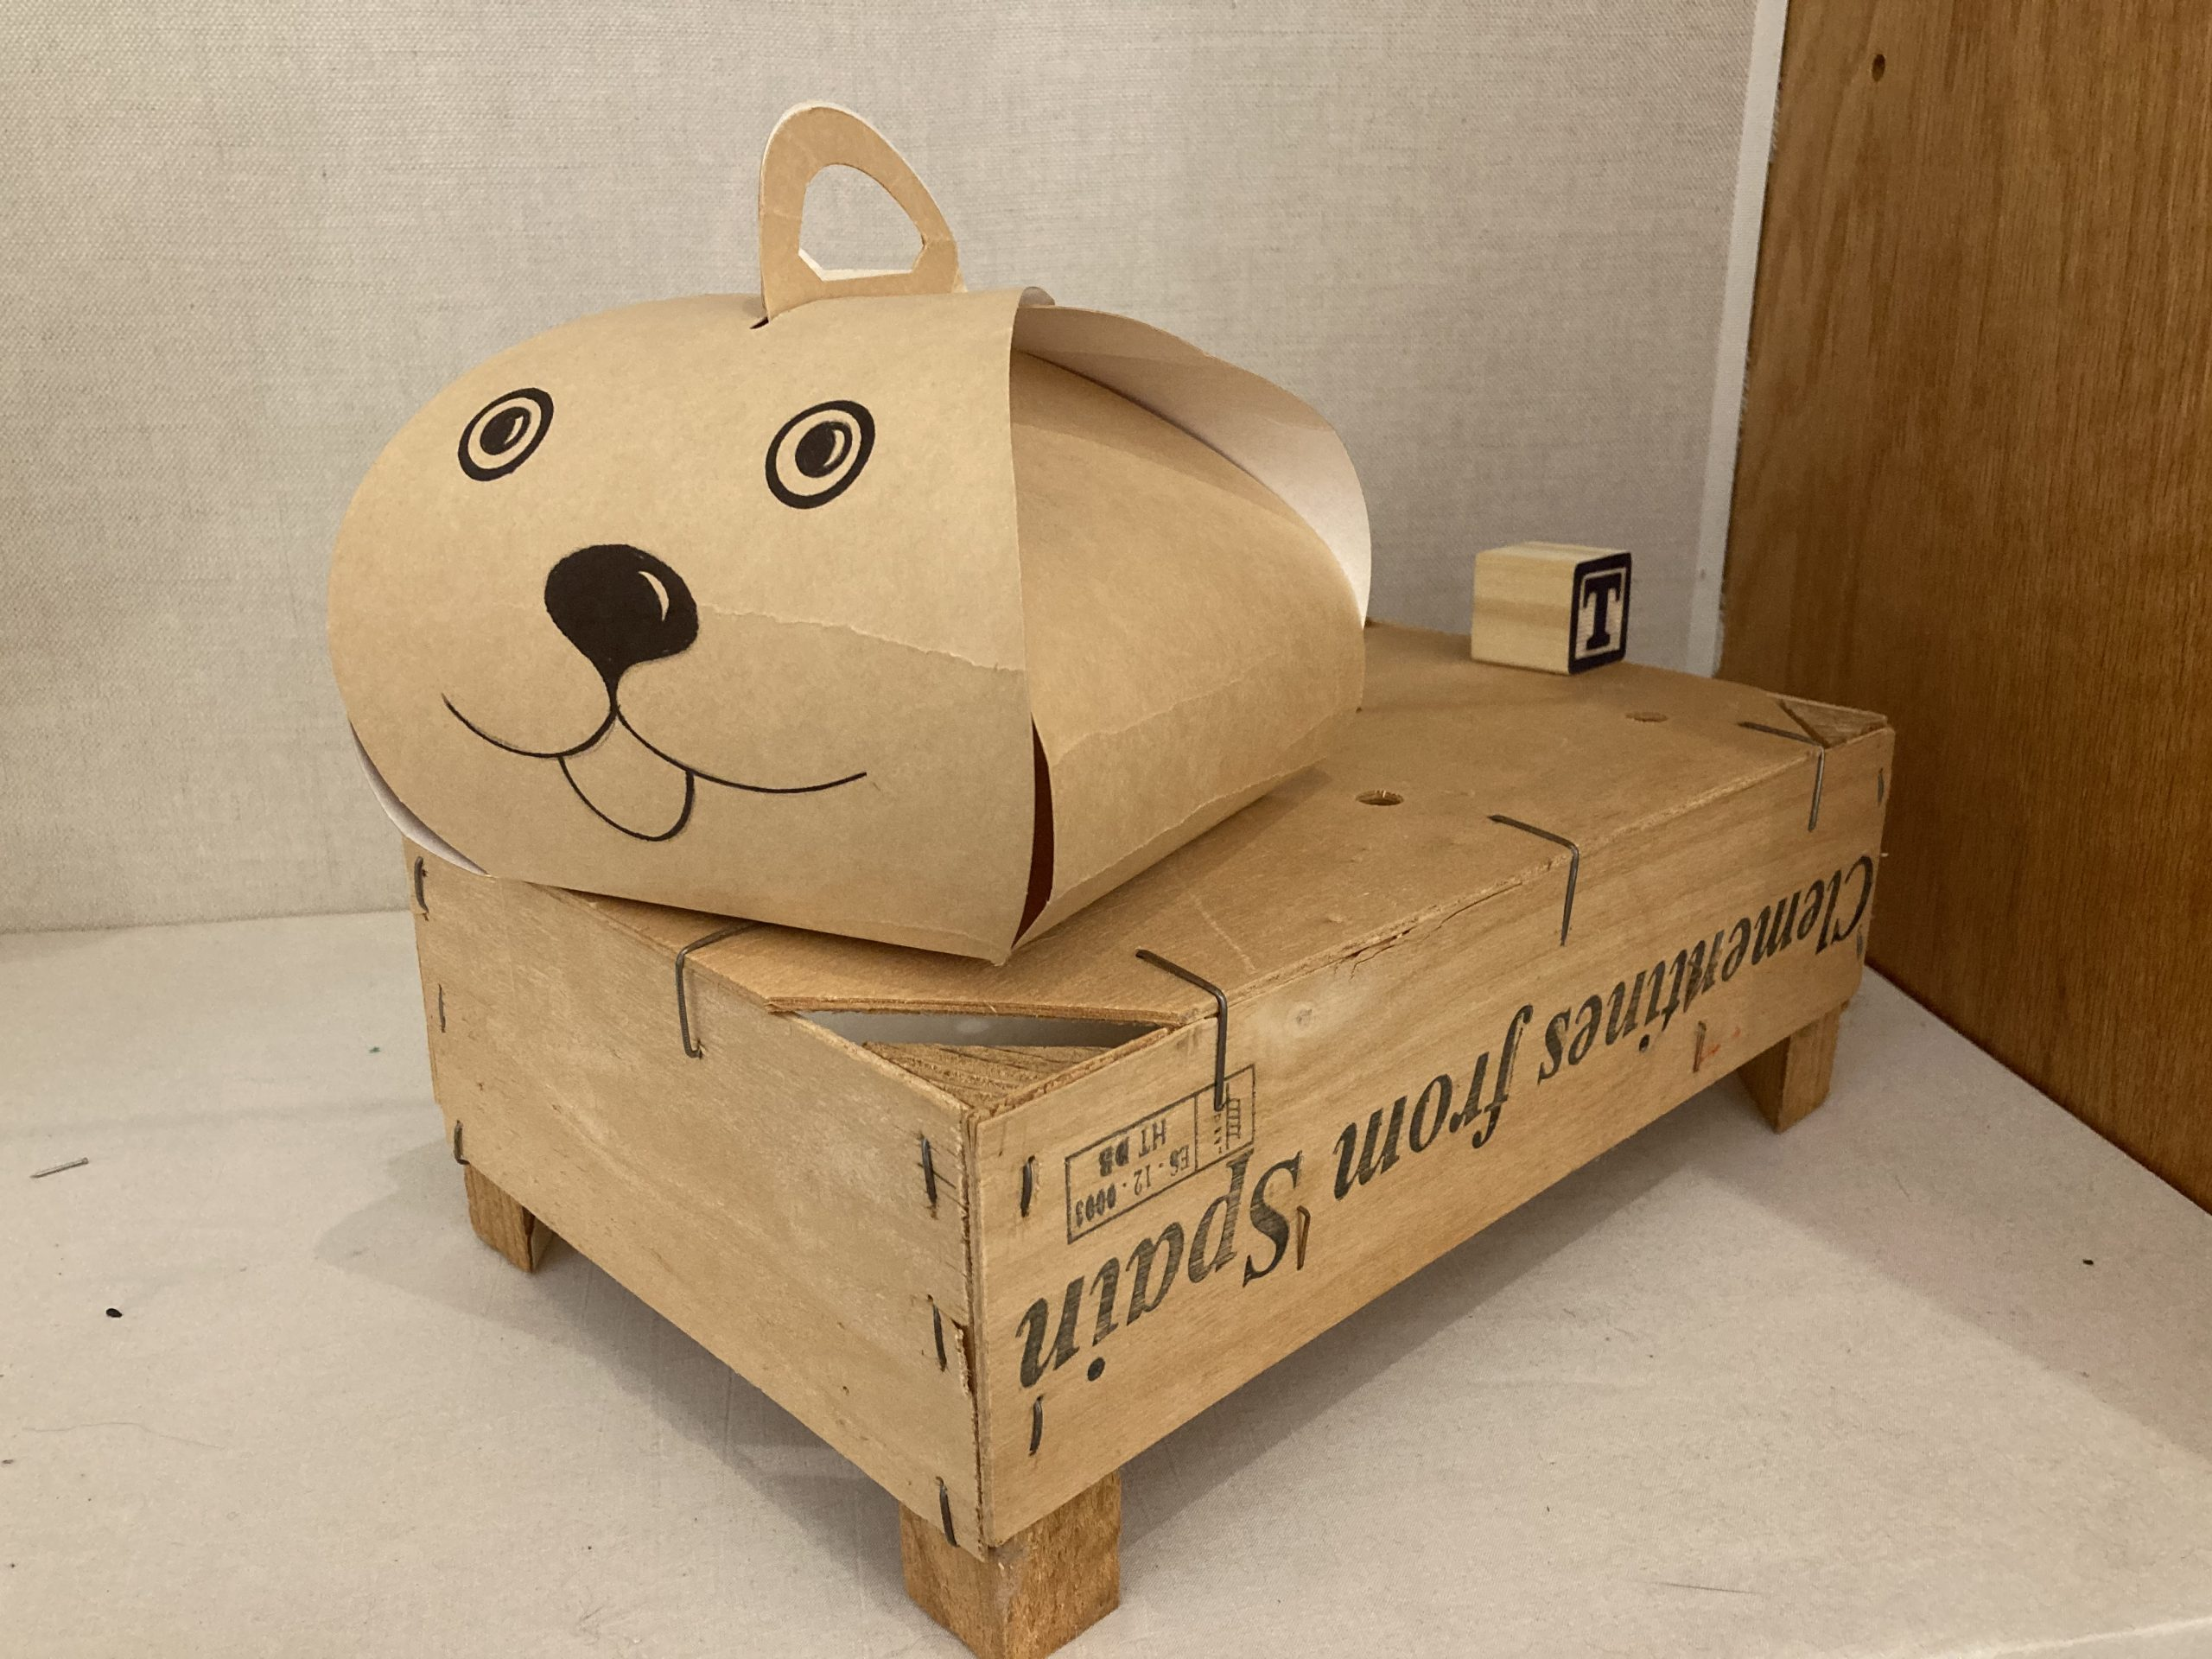 "Mark Luiggi  -  Dog  -  pastry carrier, alphabet block, clementine box  -  10"" x 12"" x 7.5'  -  $50.00"